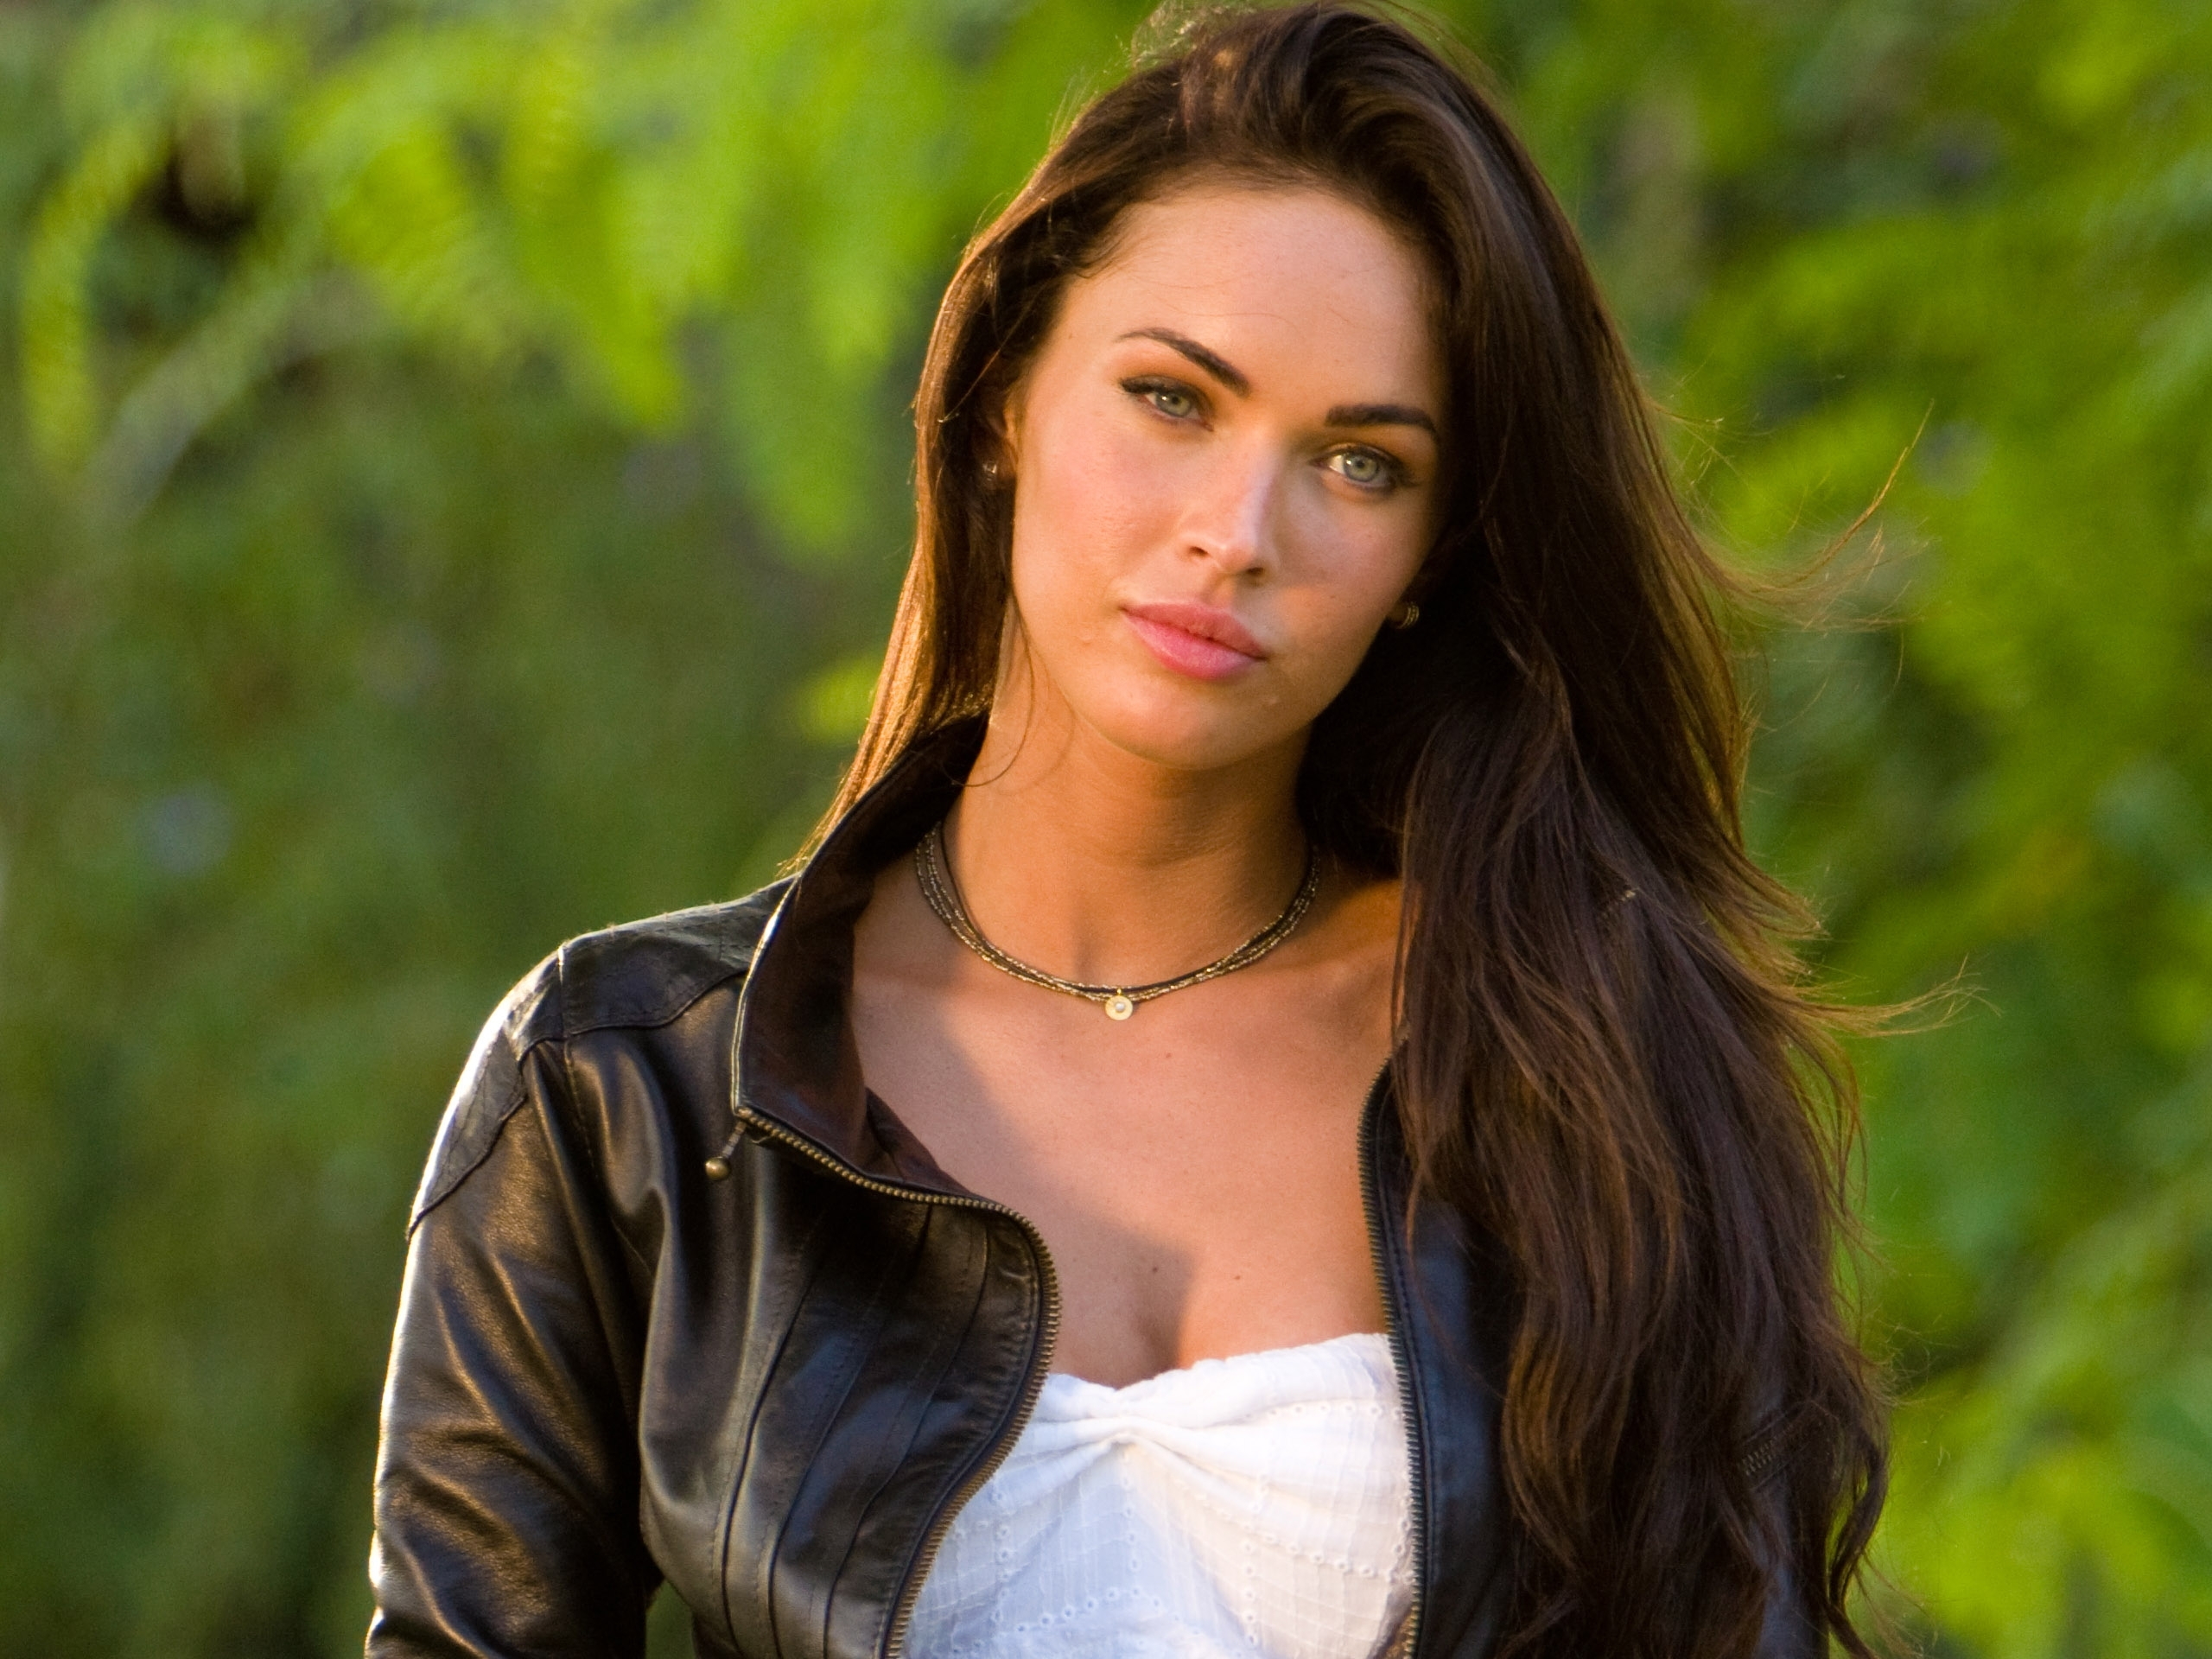 image: megan fox hd wallpaper 001 - album: megan fox: wallpaper